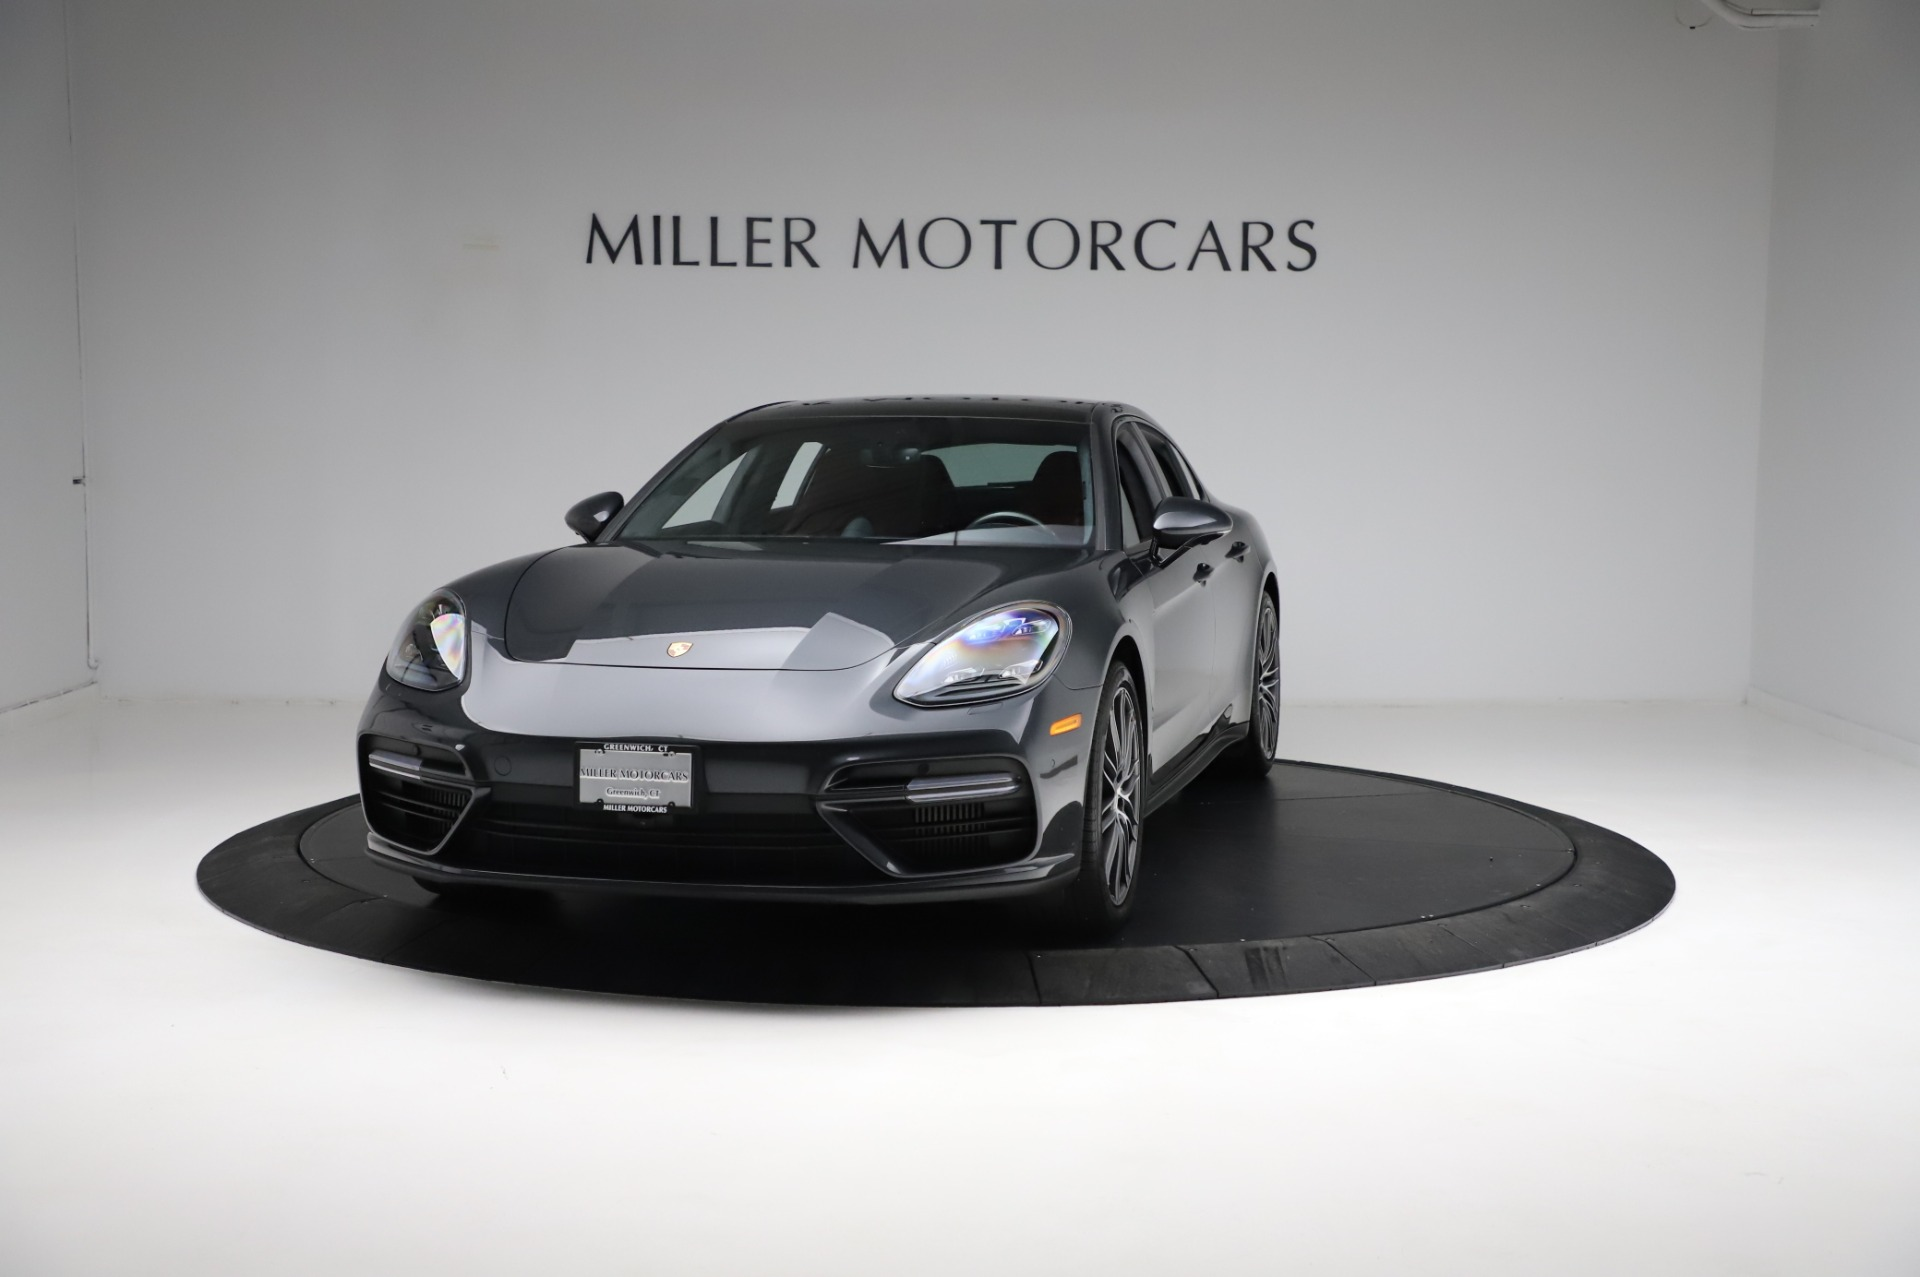 Used 2018 Porsche Panamera Turbo for sale Sold at Bentley Greenwich in Greenwich CT 06830 1